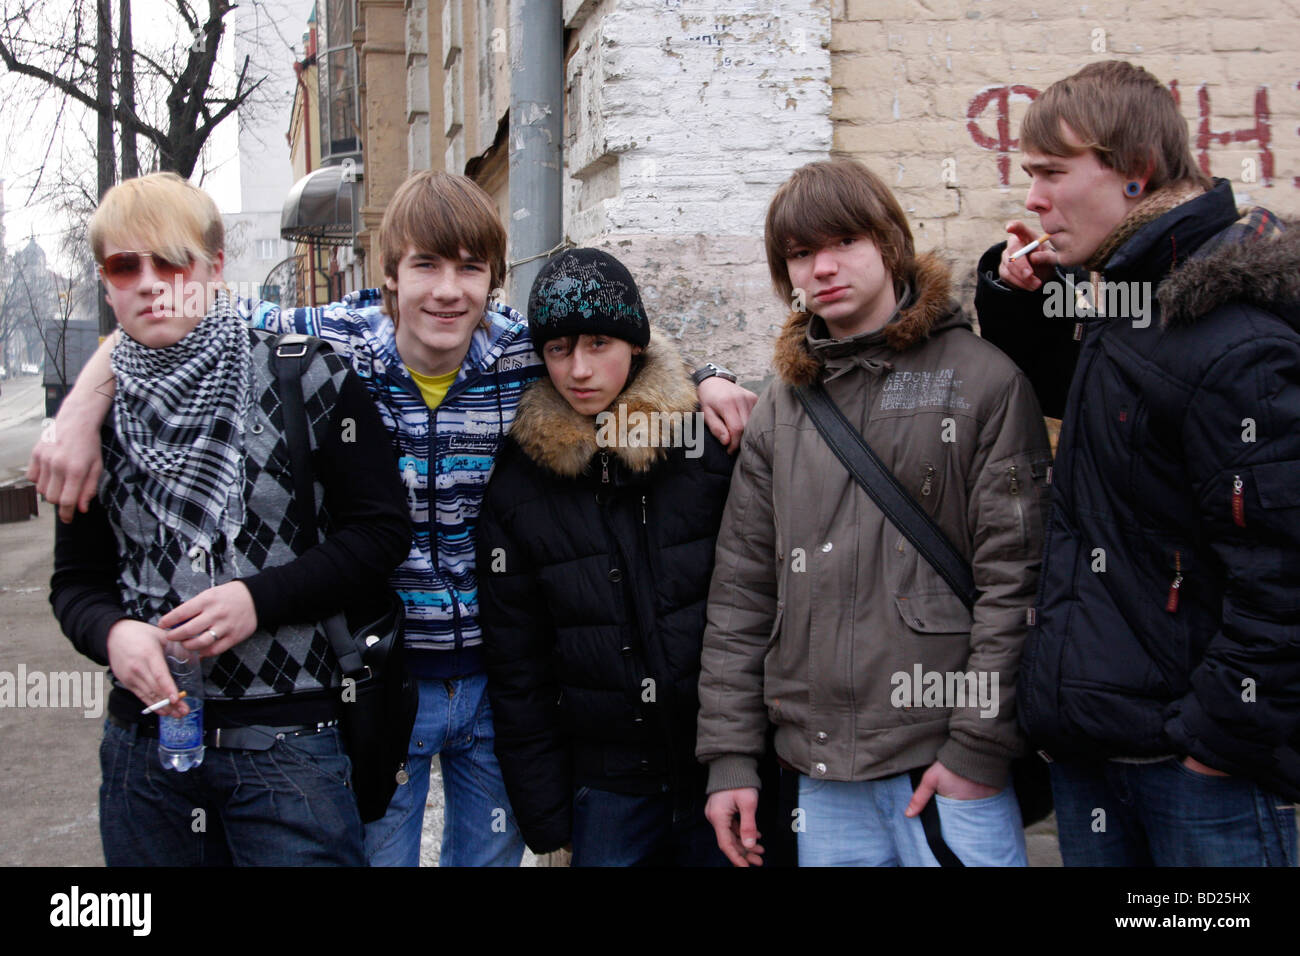 Ukrainian teenagers, students of hair stylists school chill out on the street in Kyiv (Kiev) Ukraine. Only one smiles - Stock Image